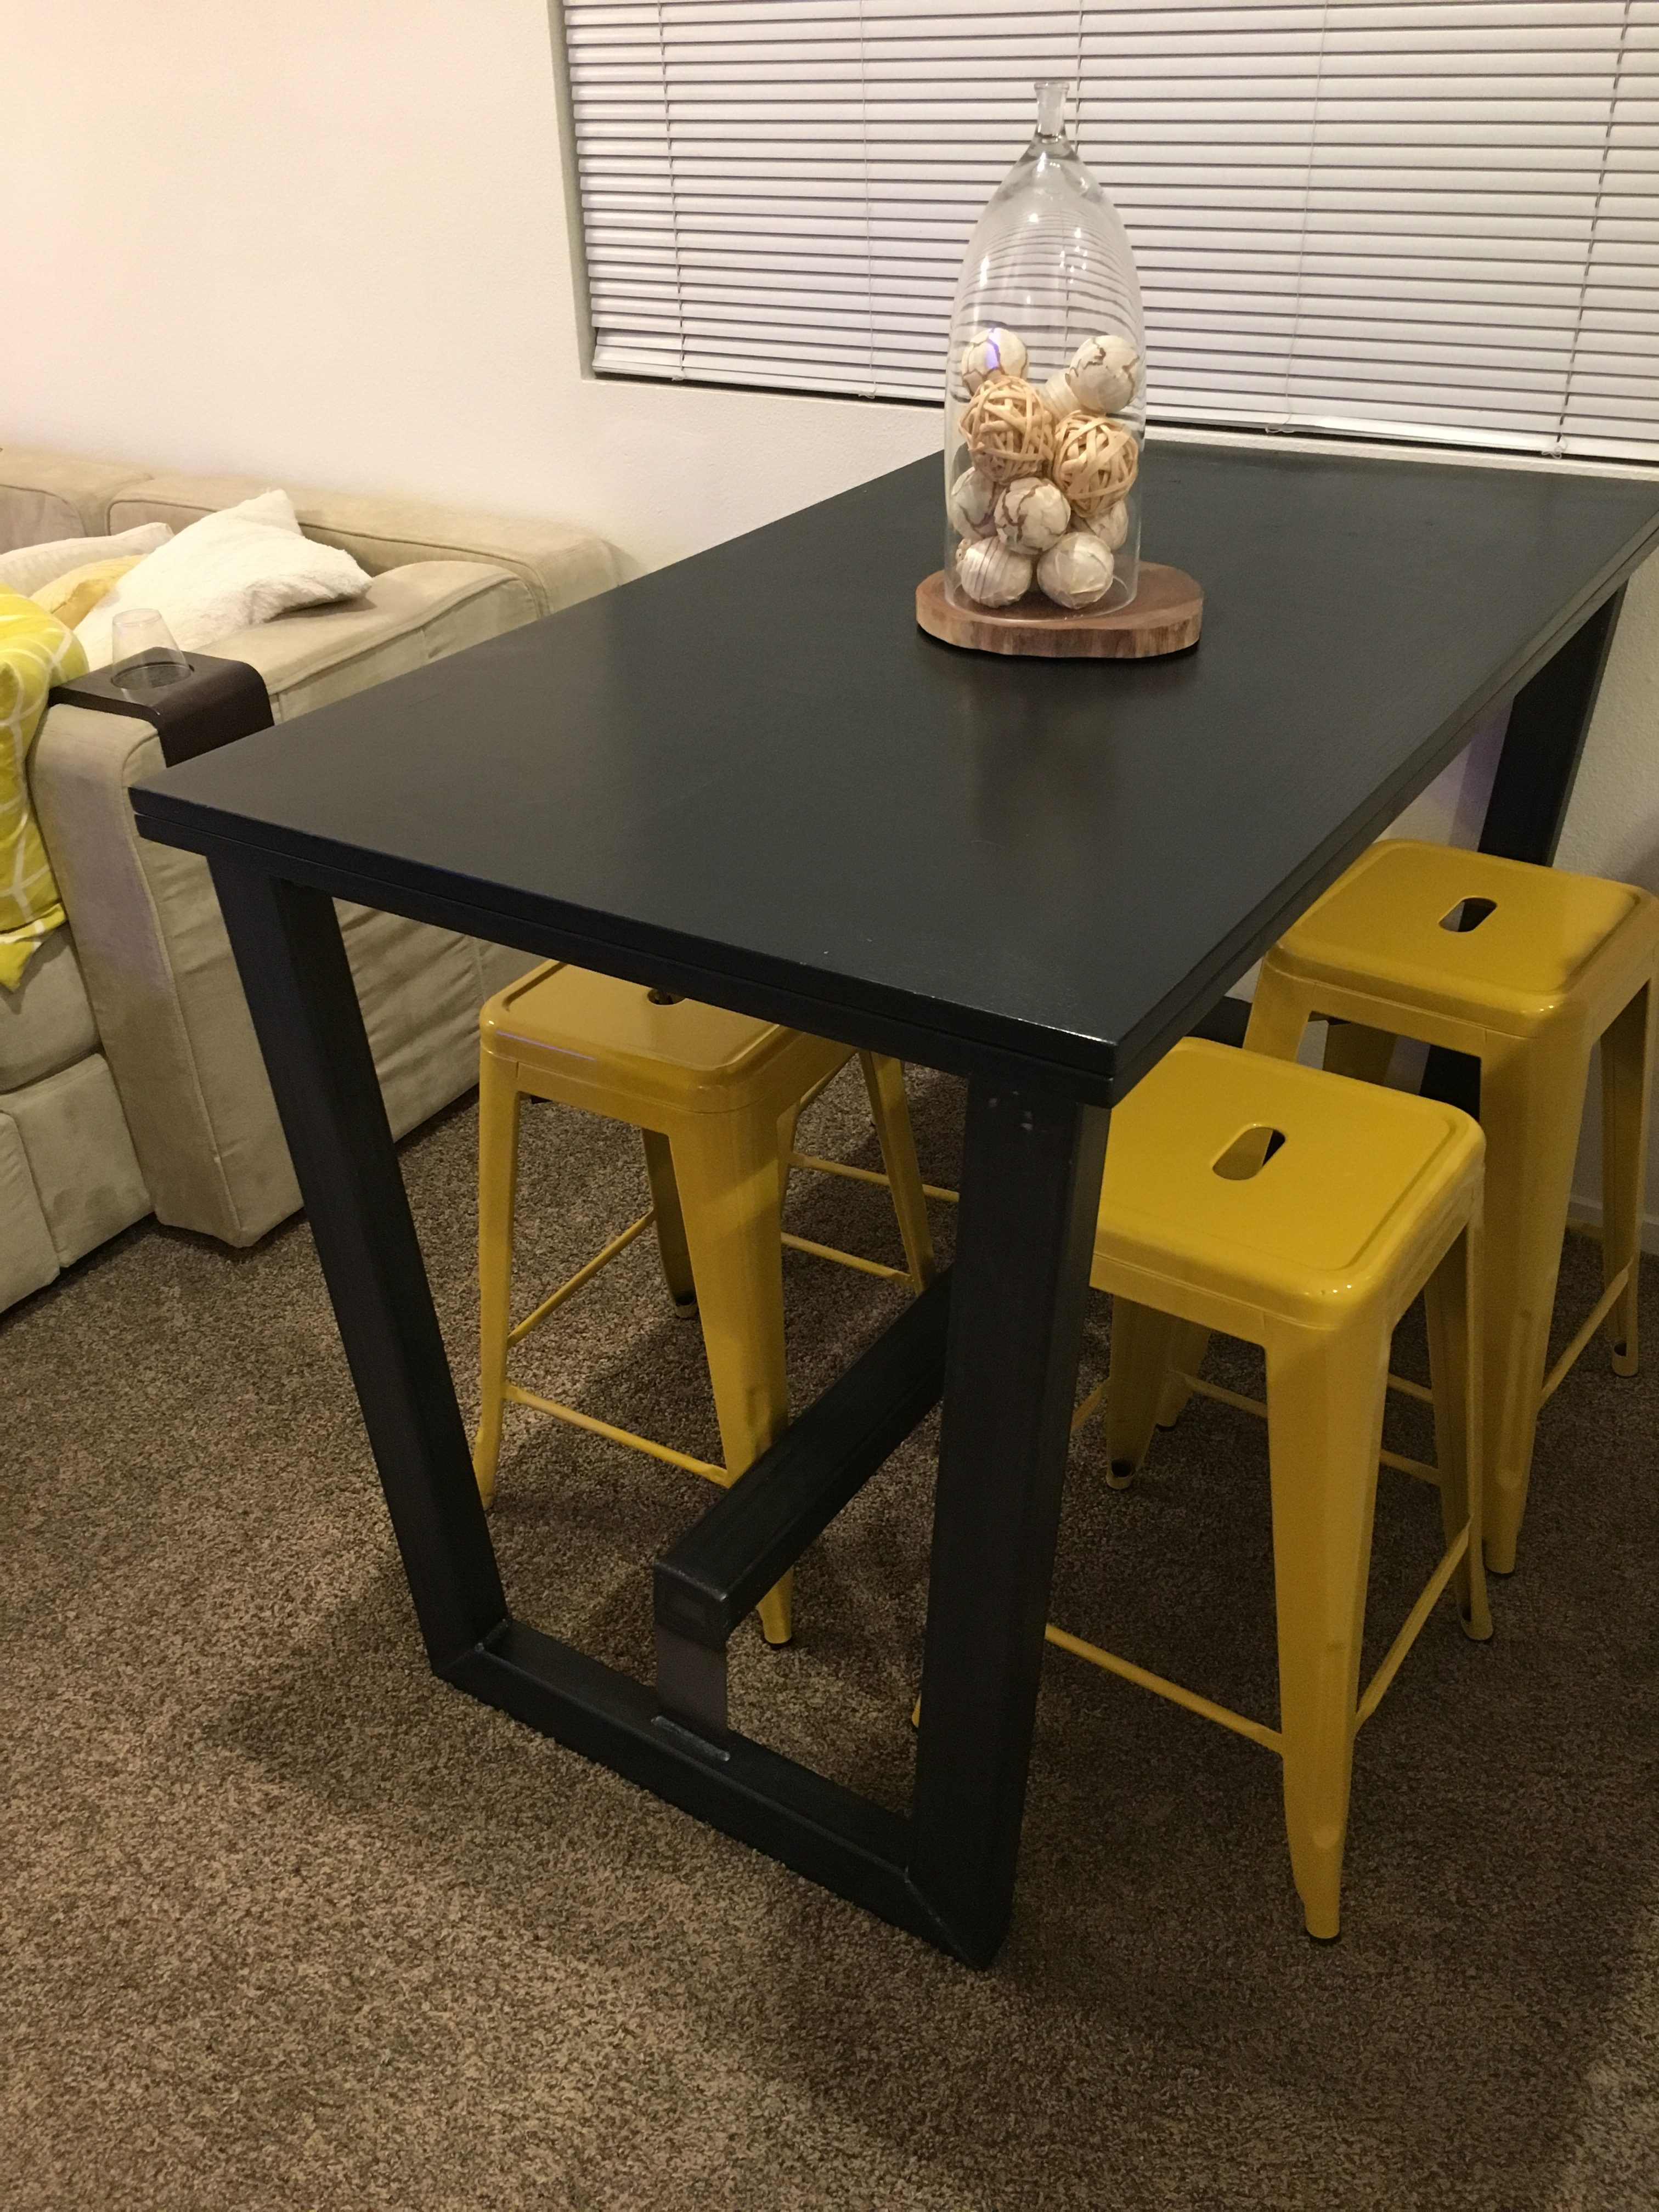 Folded table in its smaller form, on new bar height metal base with foot rest.